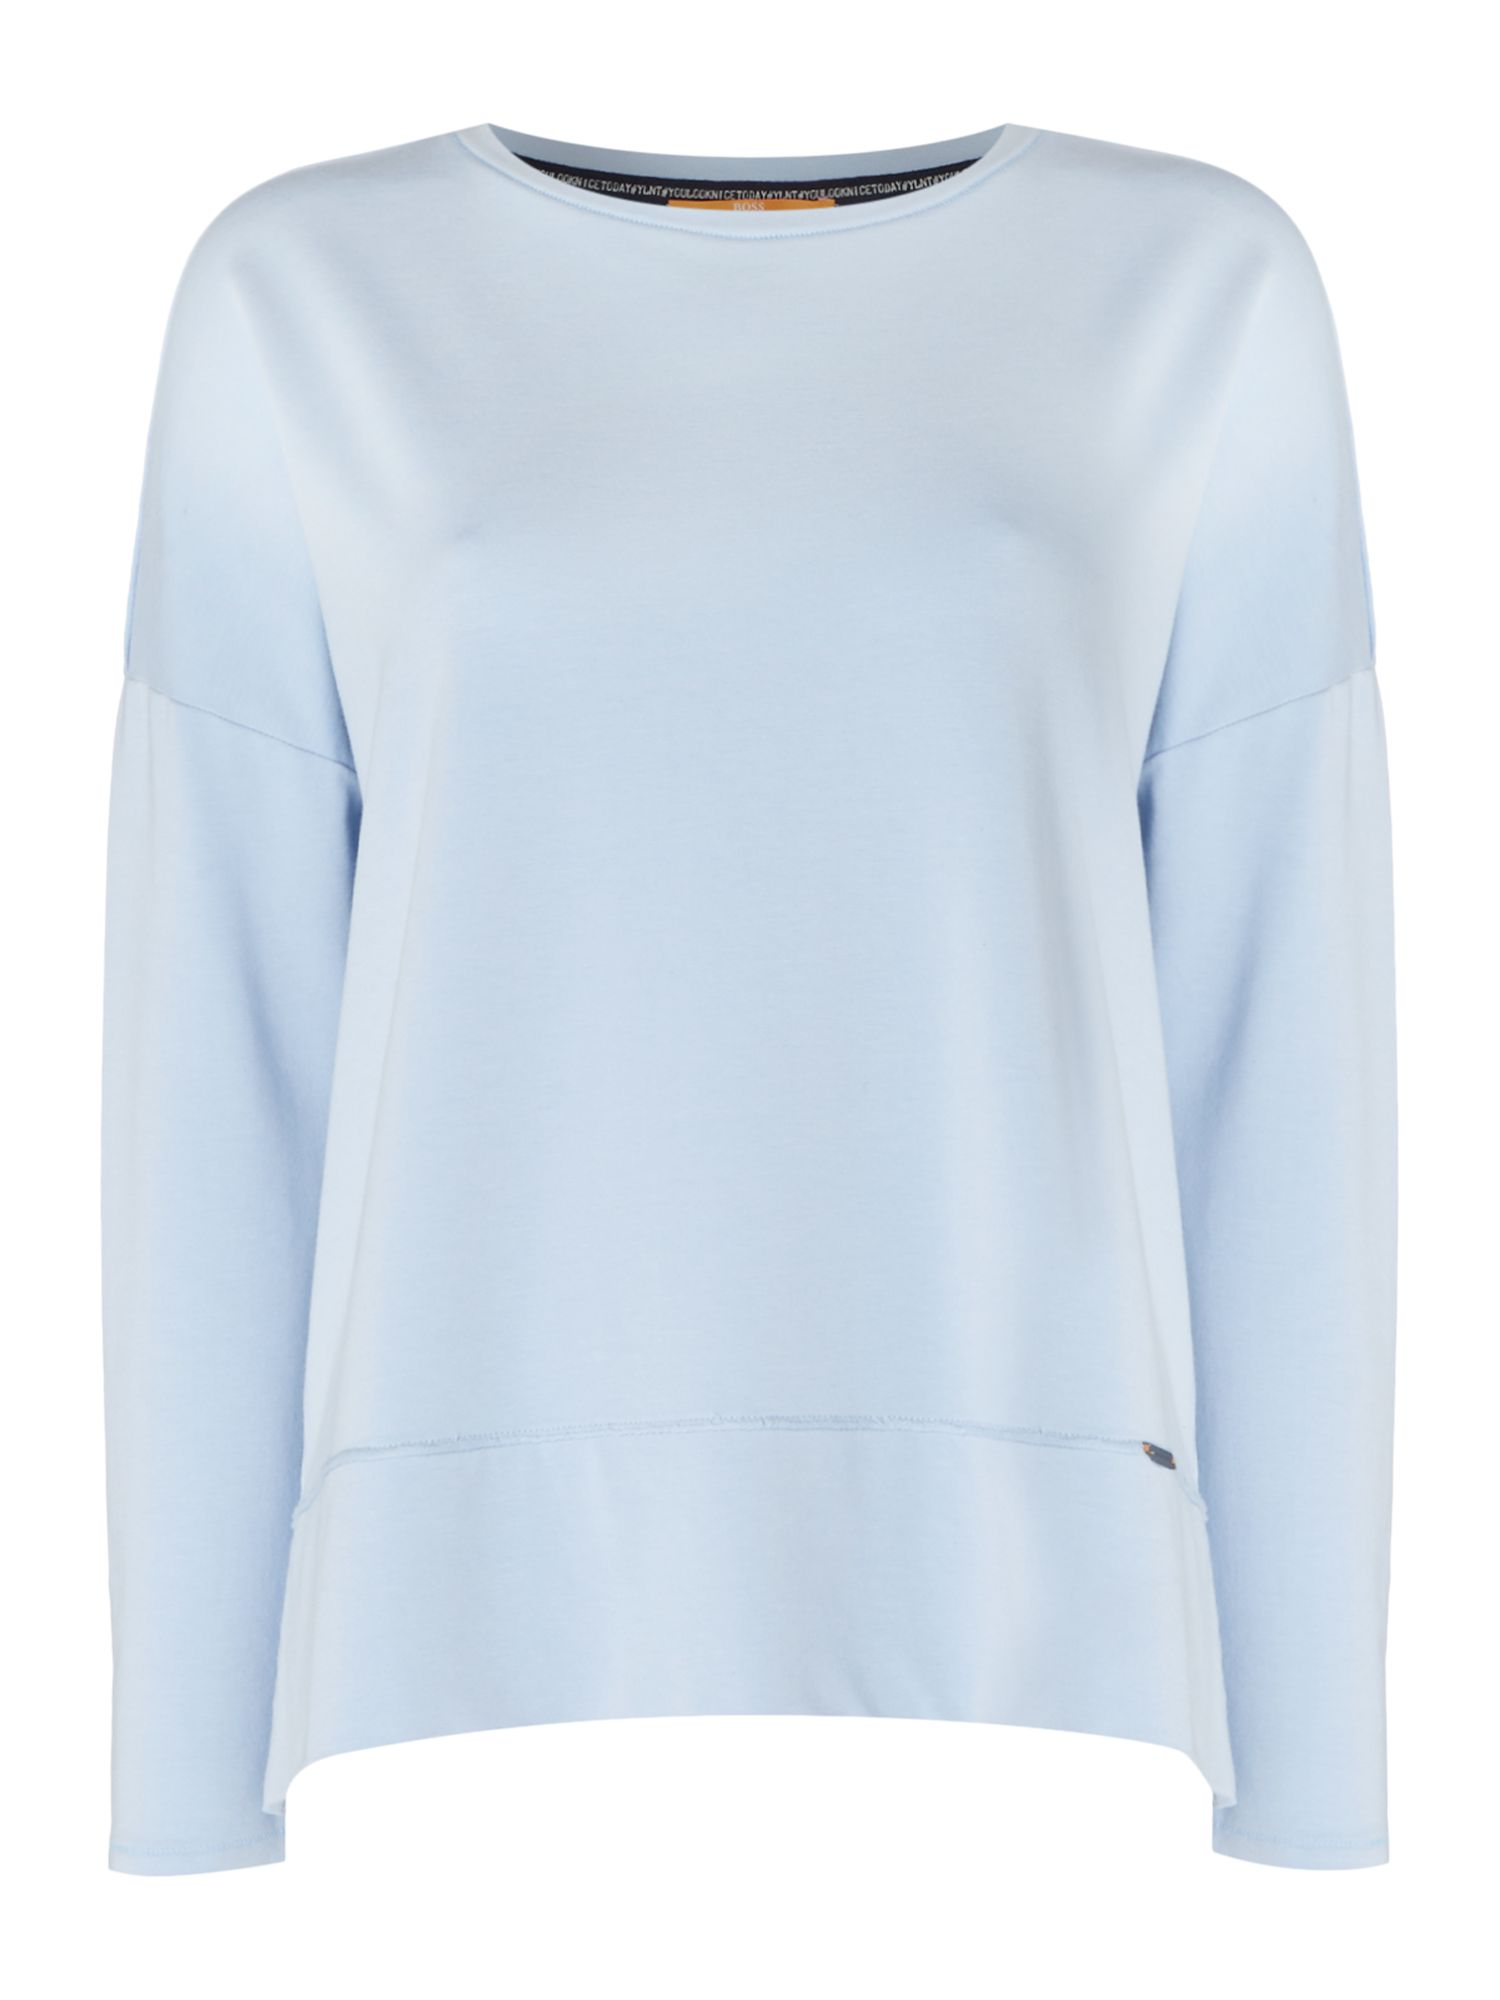 Hugo Boss Tersweat Crew Neck Jersey Top in Open Blue, Light Blue